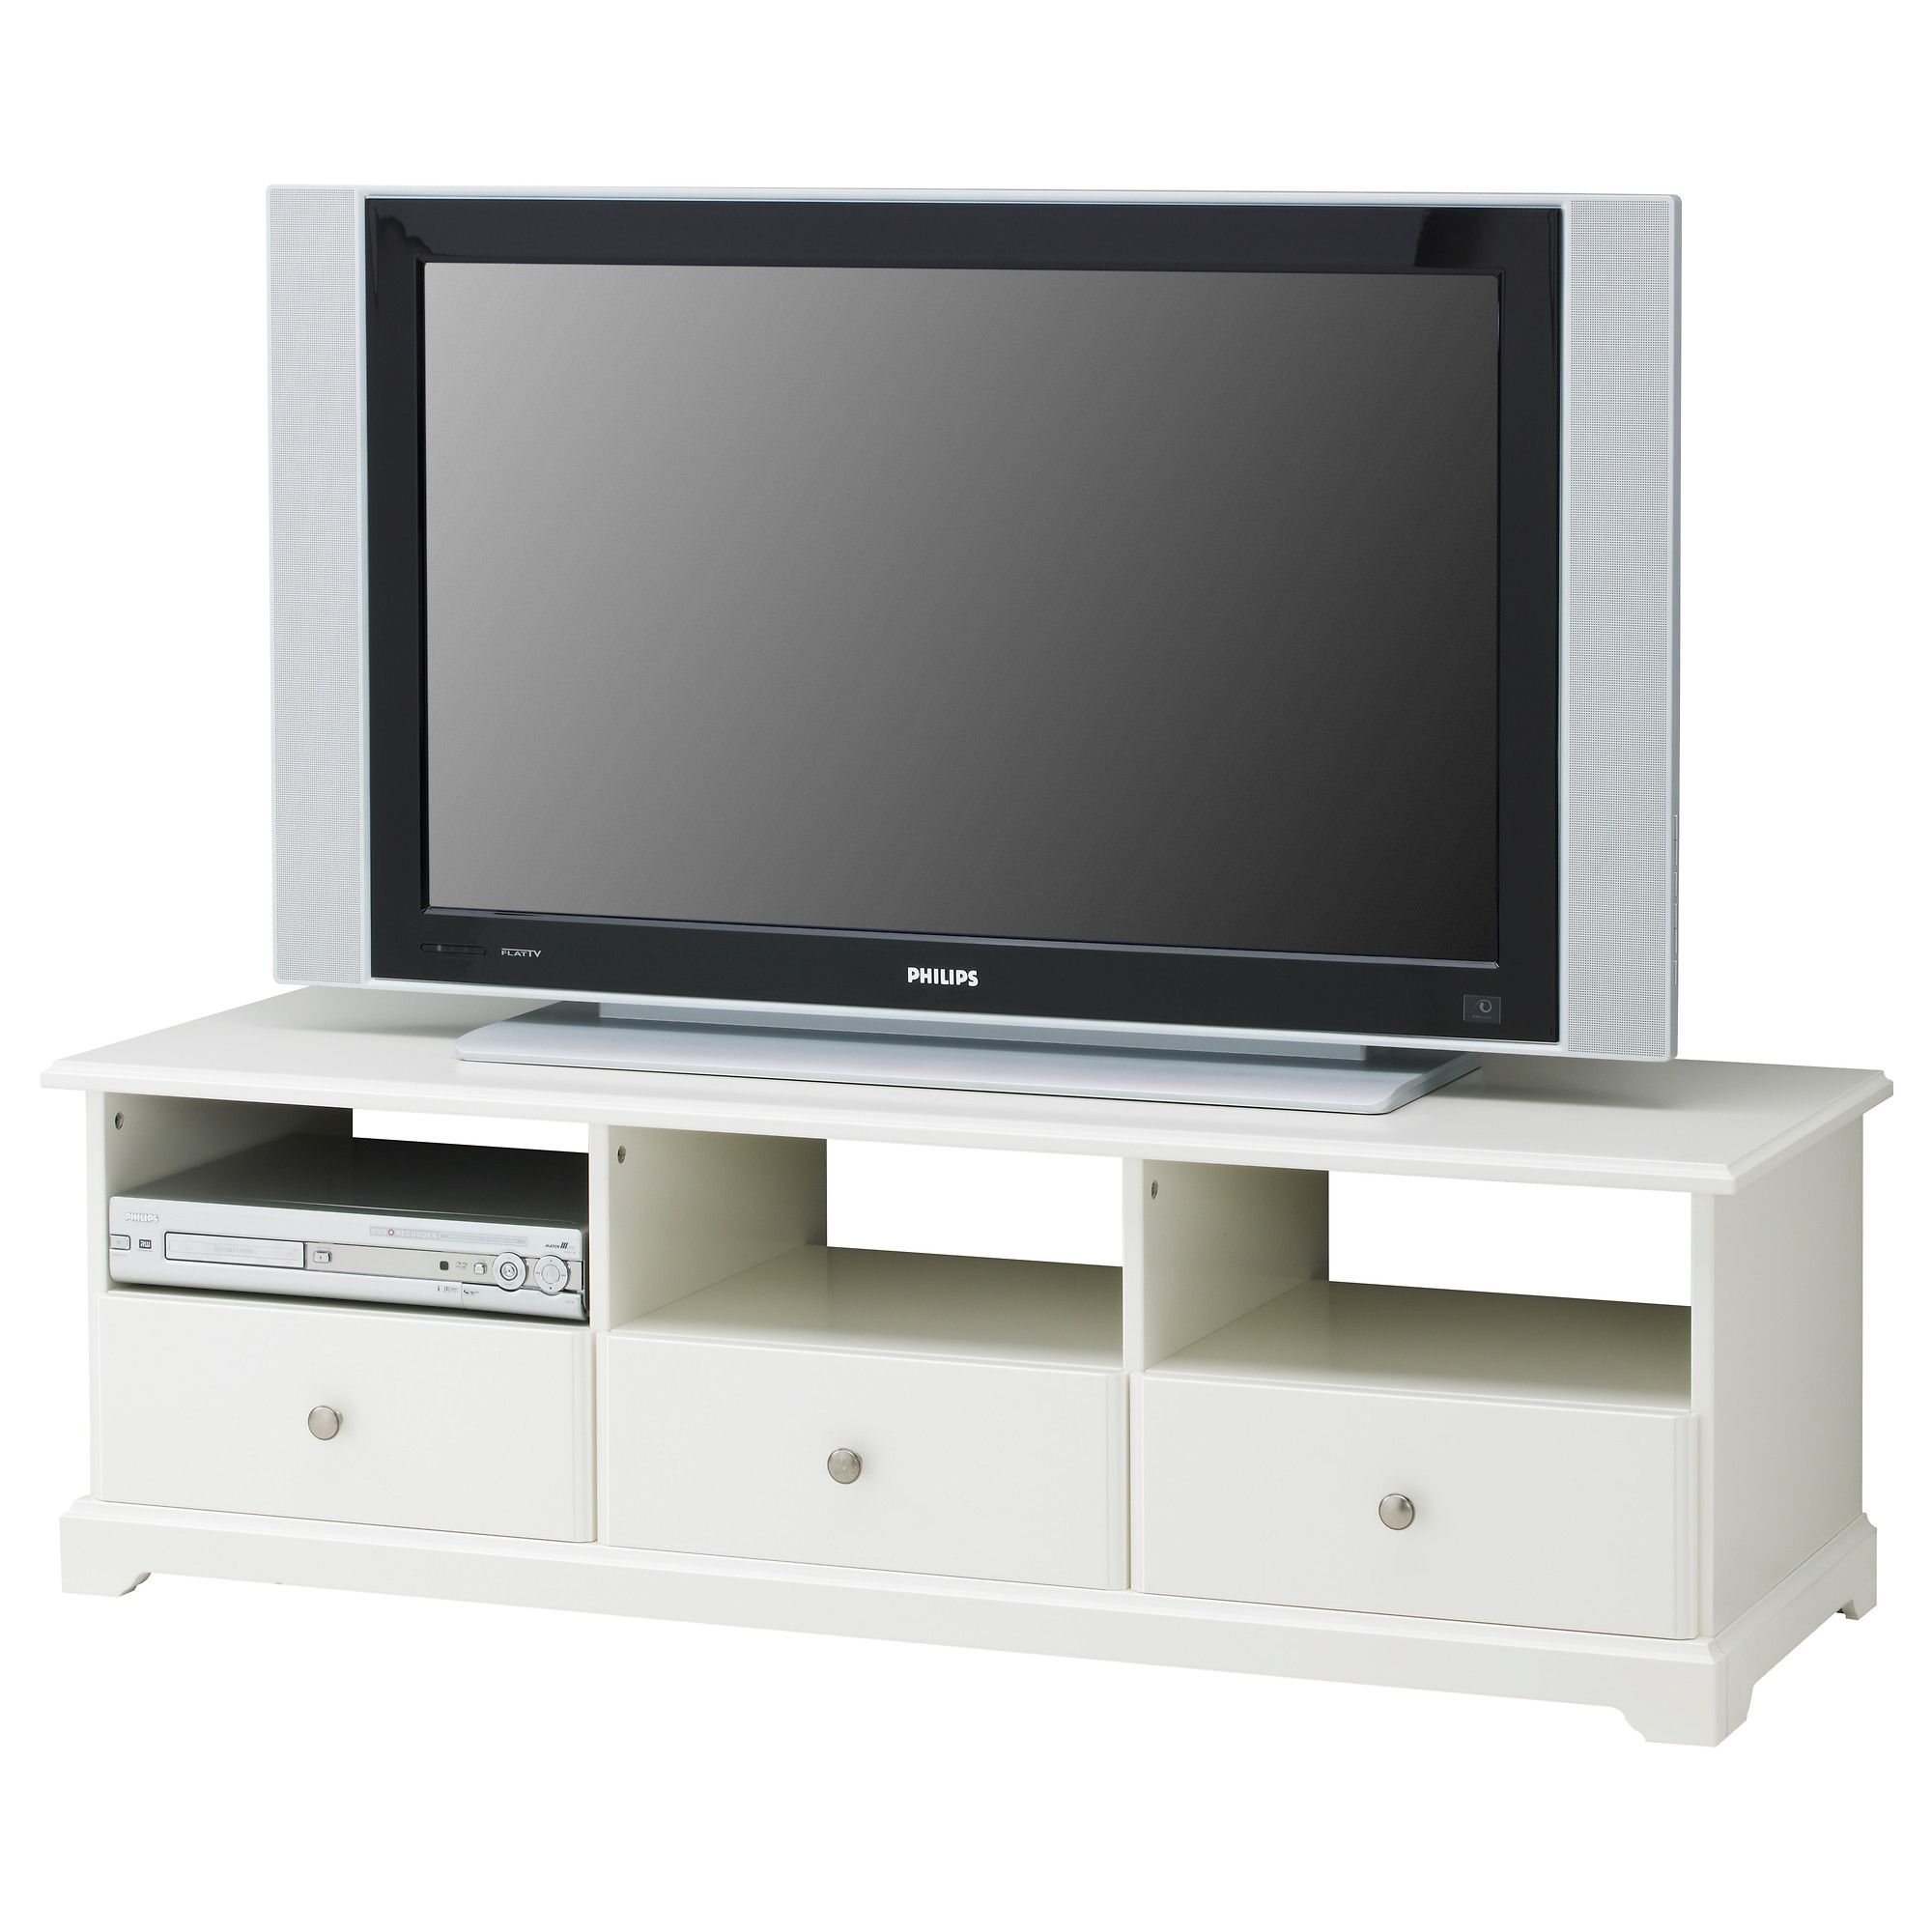 liatorp tv unit white liatorp tv units and tv bench. Black Bedroom Furniture Sets. Home Design Ideas